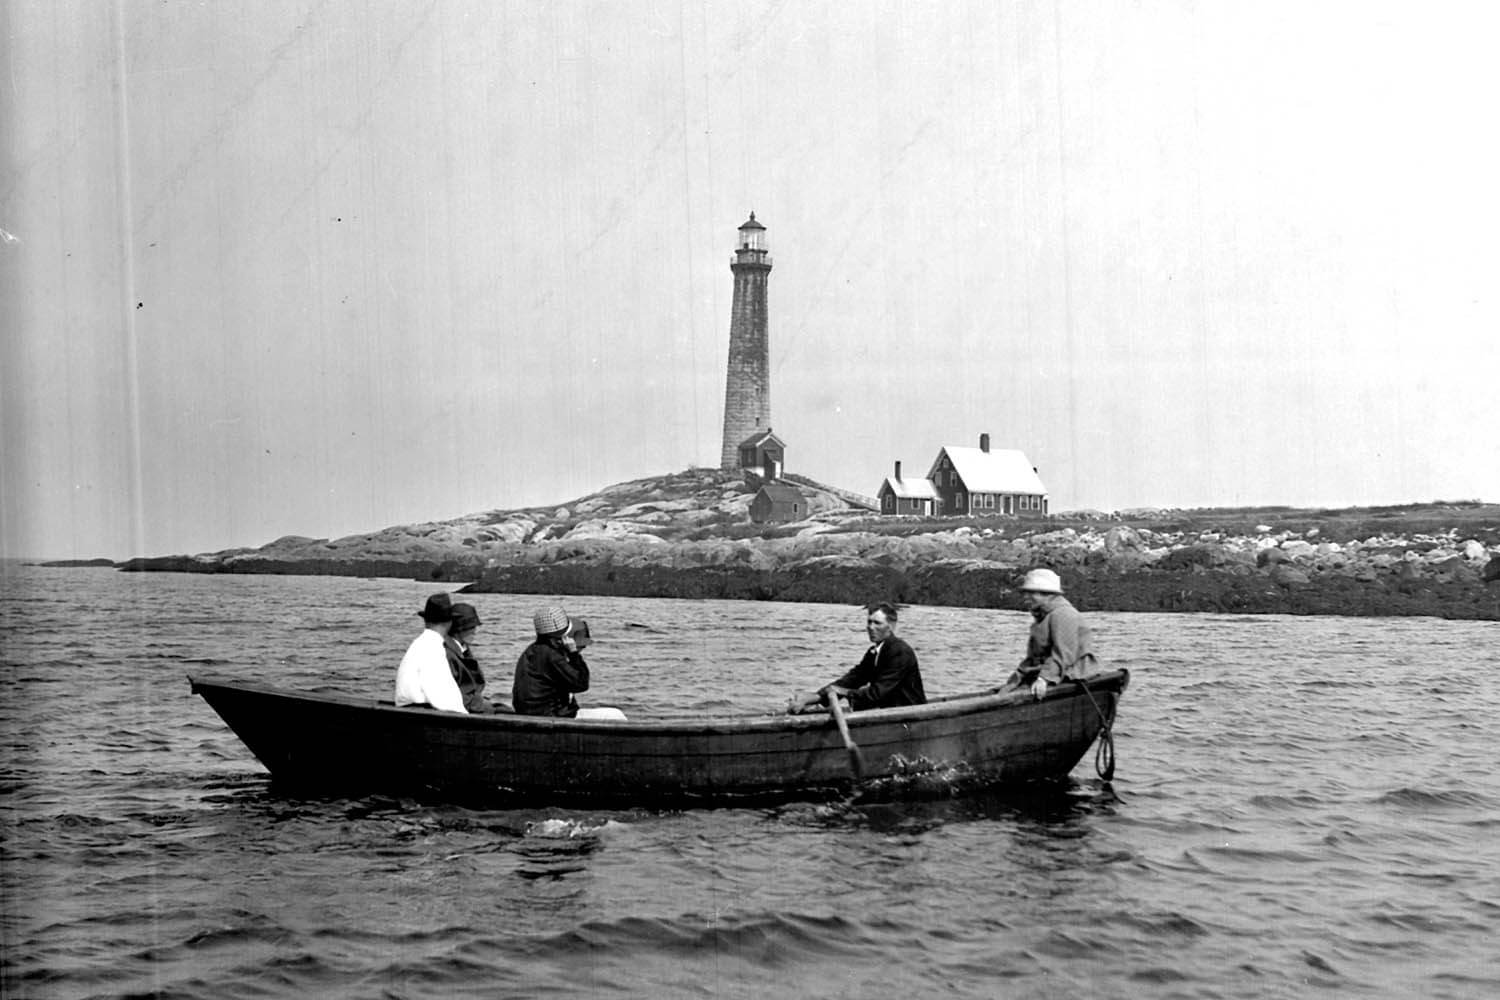 Visitors arrive from Loblolly Cove c.1930.